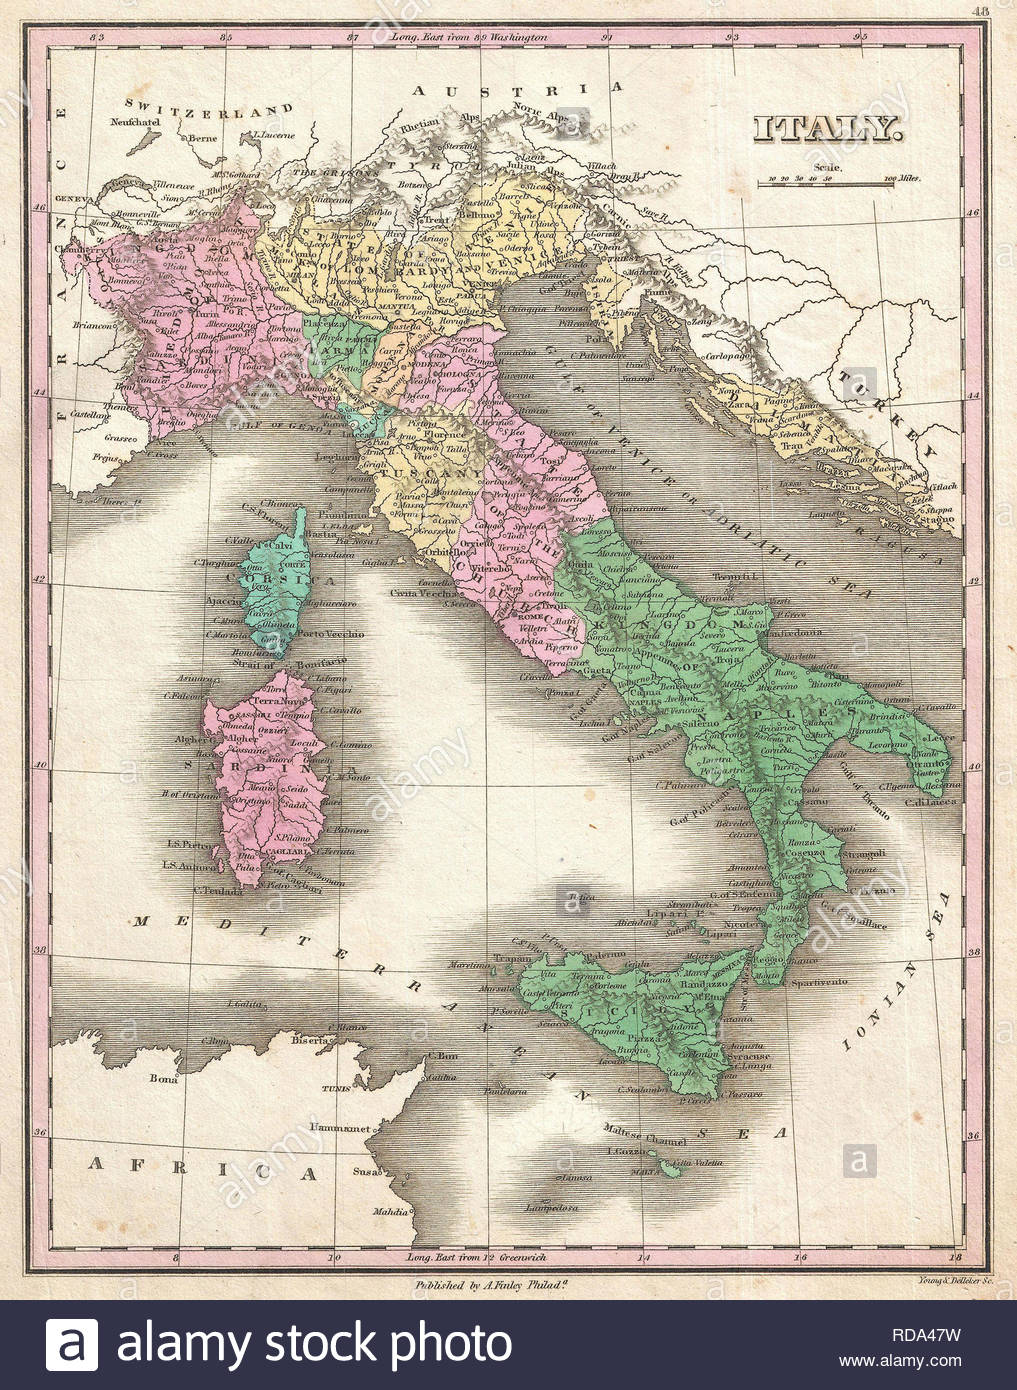 1827, Finley Map of Italy, Anthony Finley mapmaker of the United States in the 19th century. - Stock Image